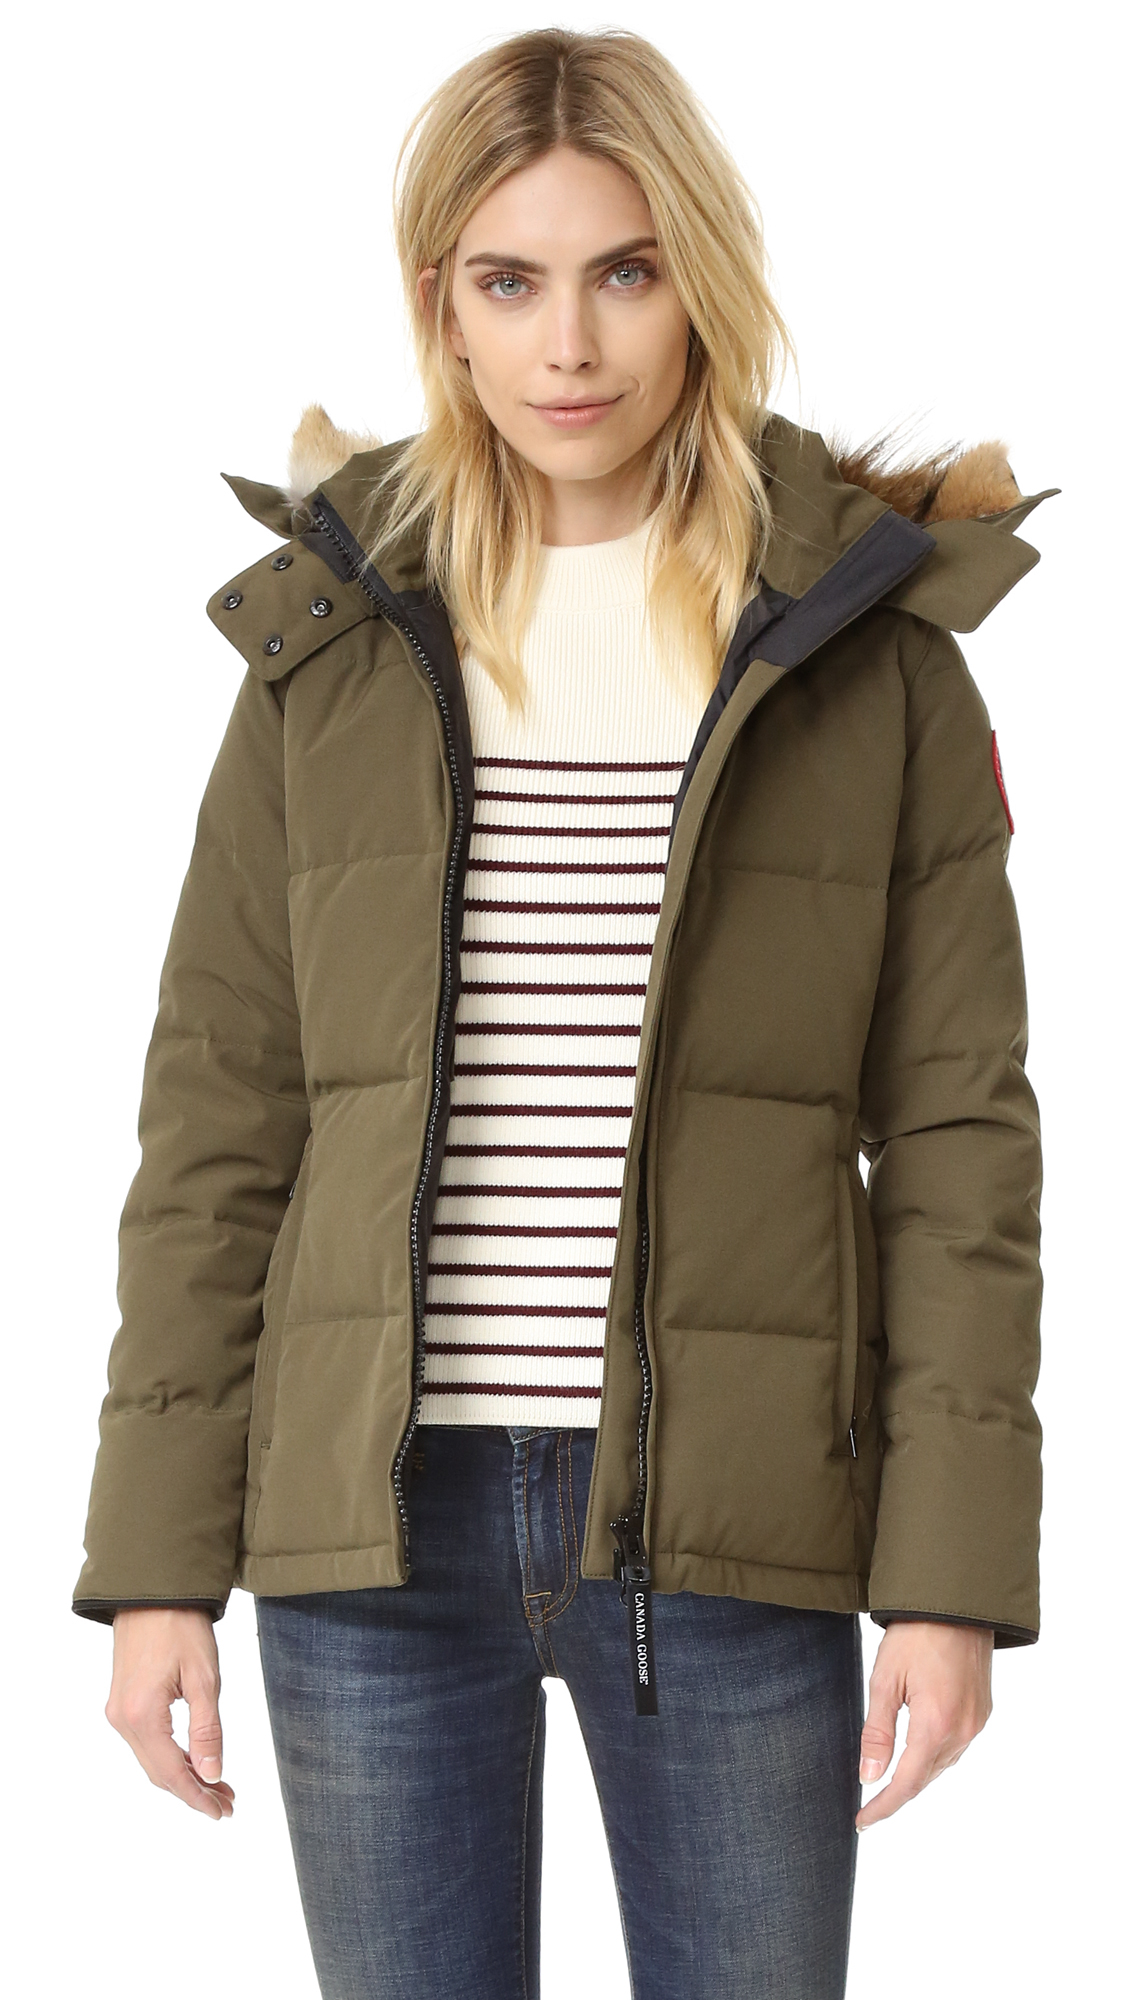 591d753f305b Lyst - Canada Goose Chelsea Parka in Green